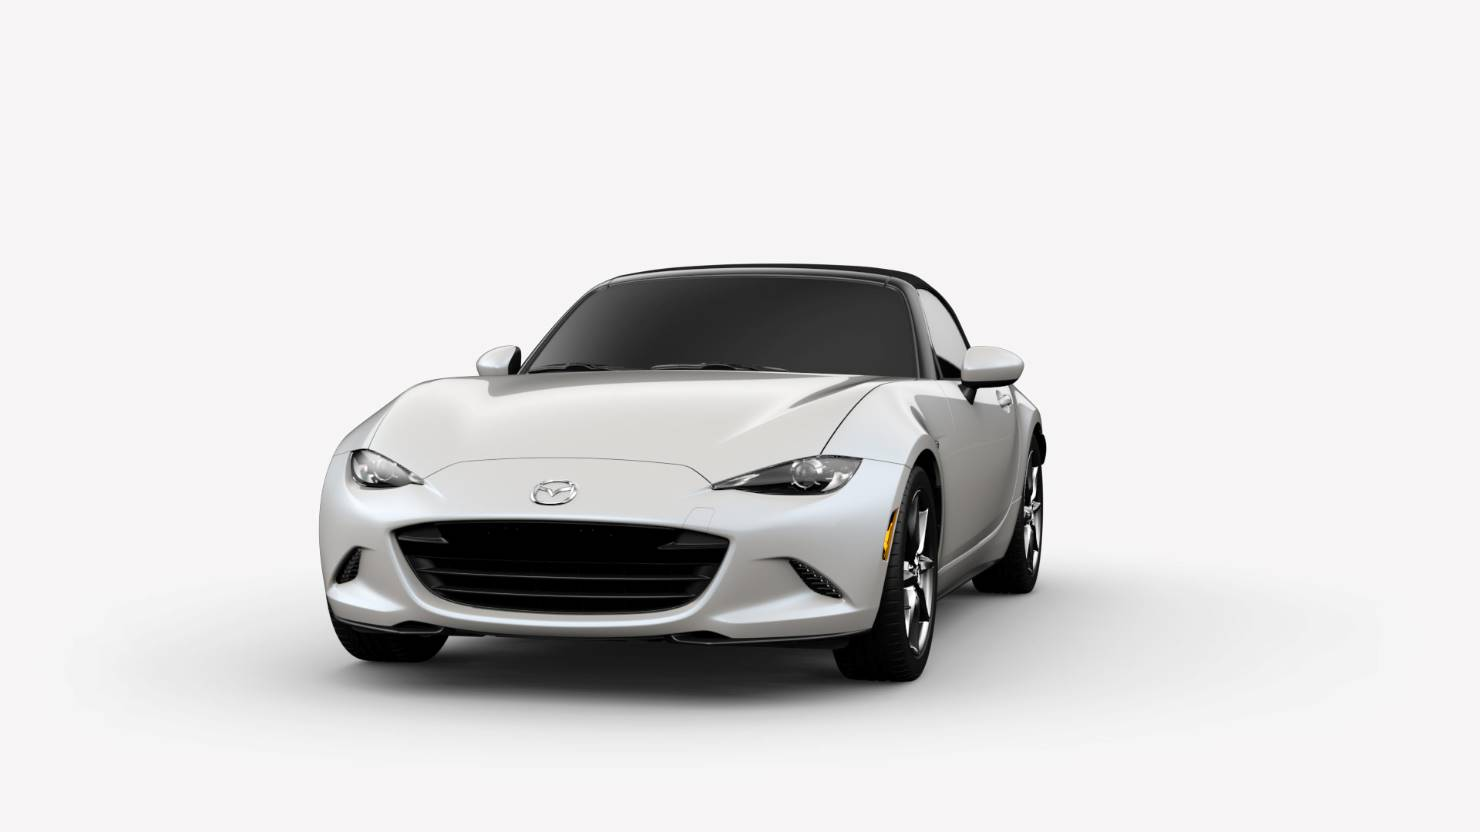 What Color Options Are Available For The 2018 Mazda Mx 5 Miata Fuel Filter Location Snowflake White Pearl Mica